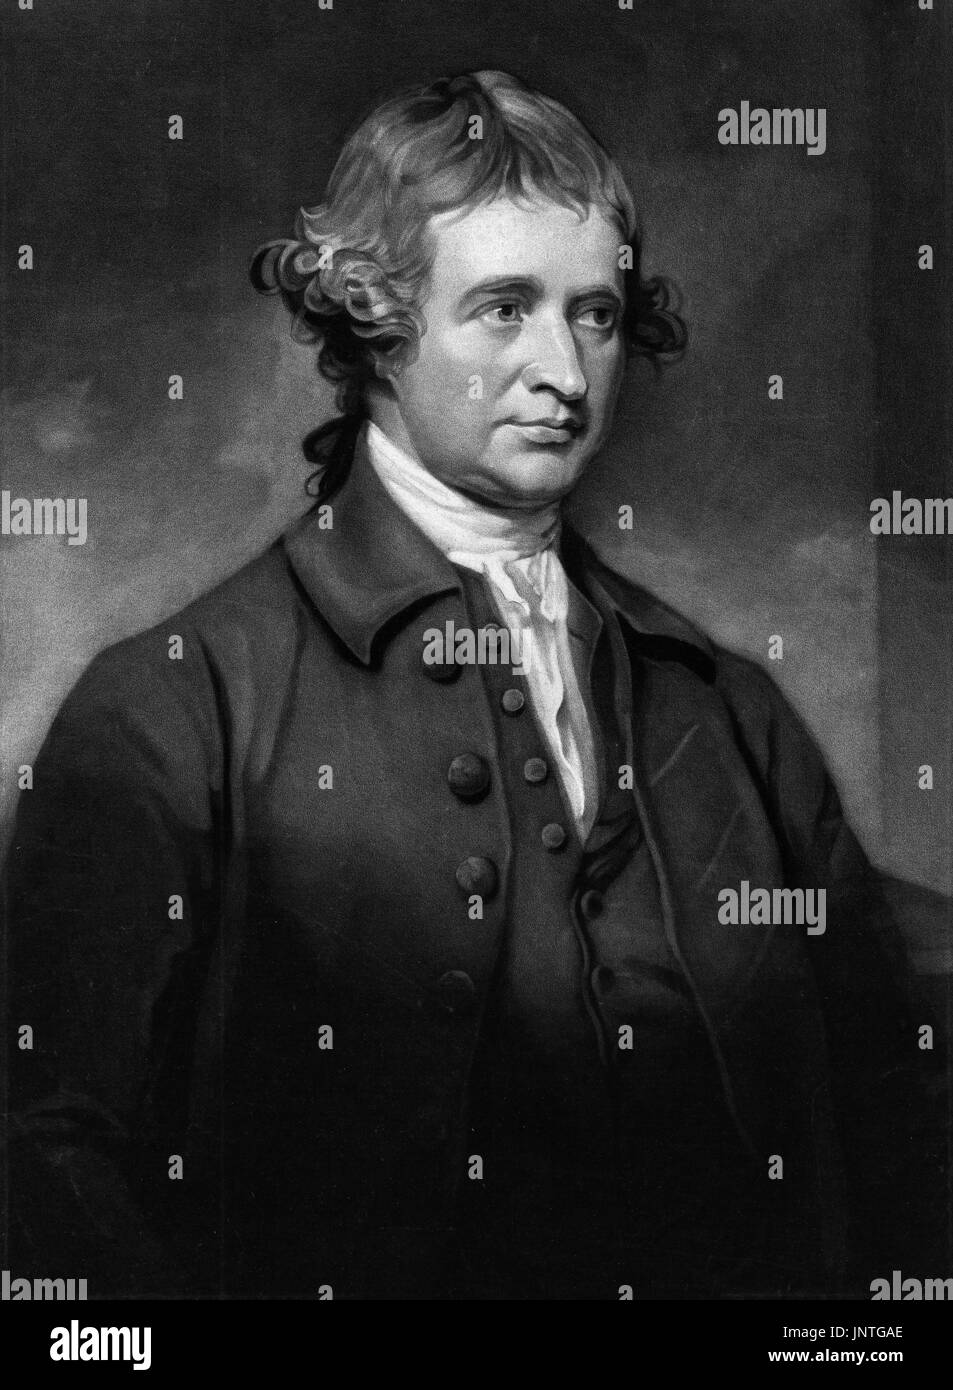 Edmund Burke (1729-1797), the Anglo-Irish statesman and philosopher, mezzotint engraving by John Jones from a portrait by George Romney - Stock Image